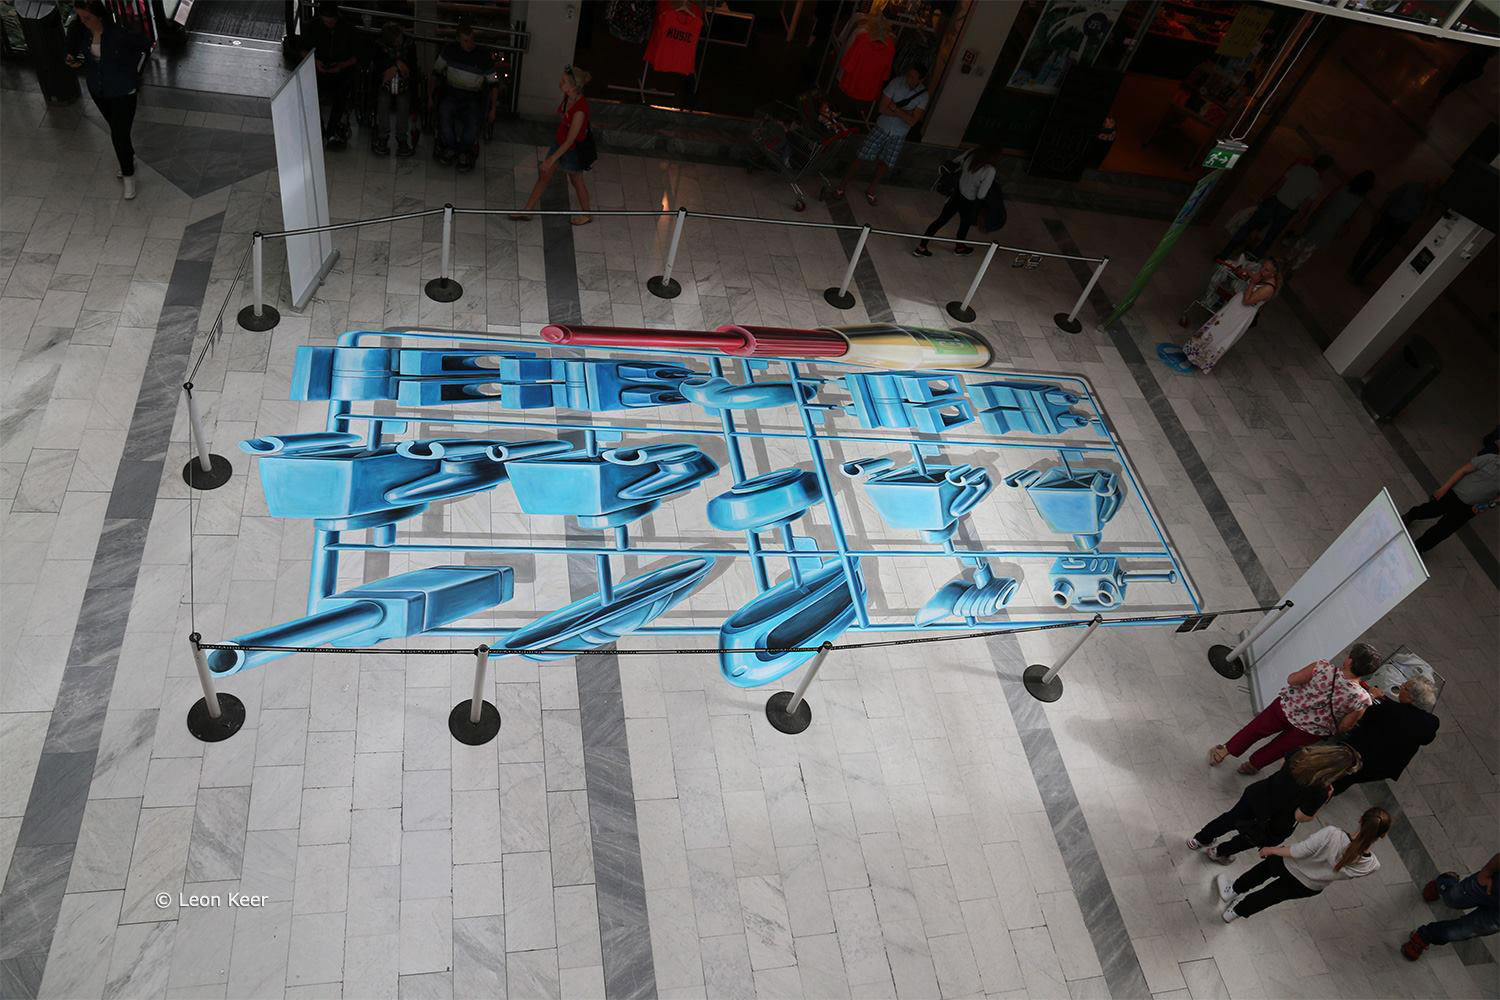 blue box system, anamorphic 3d art by leon keer